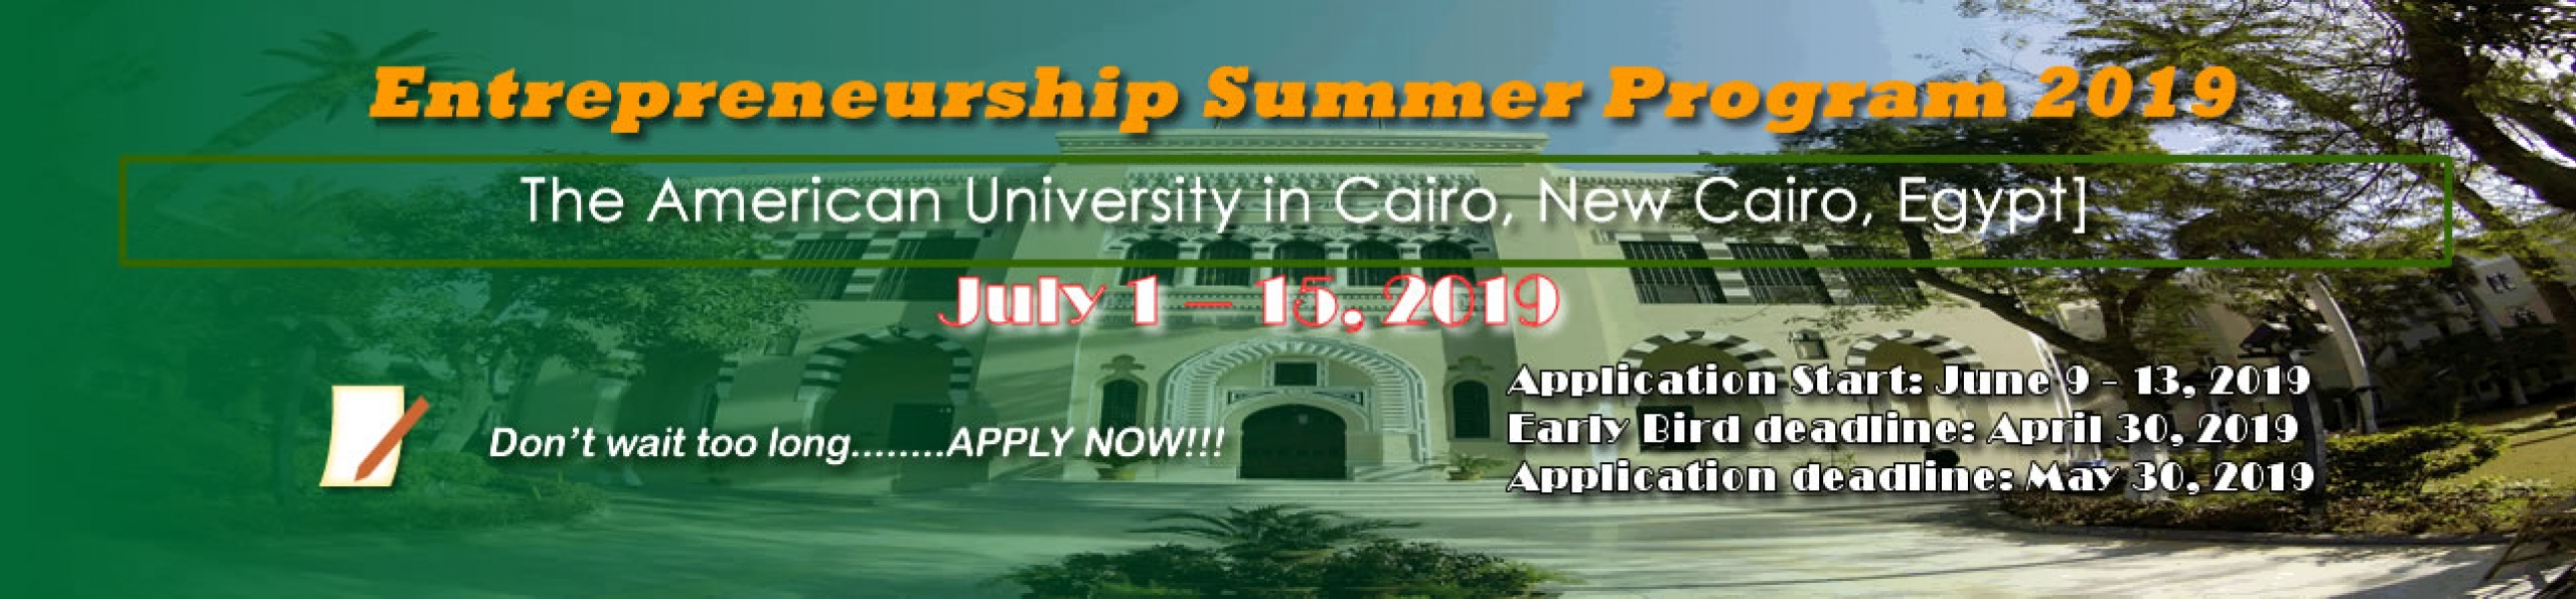 Entrepreneurship Summer Program 2019